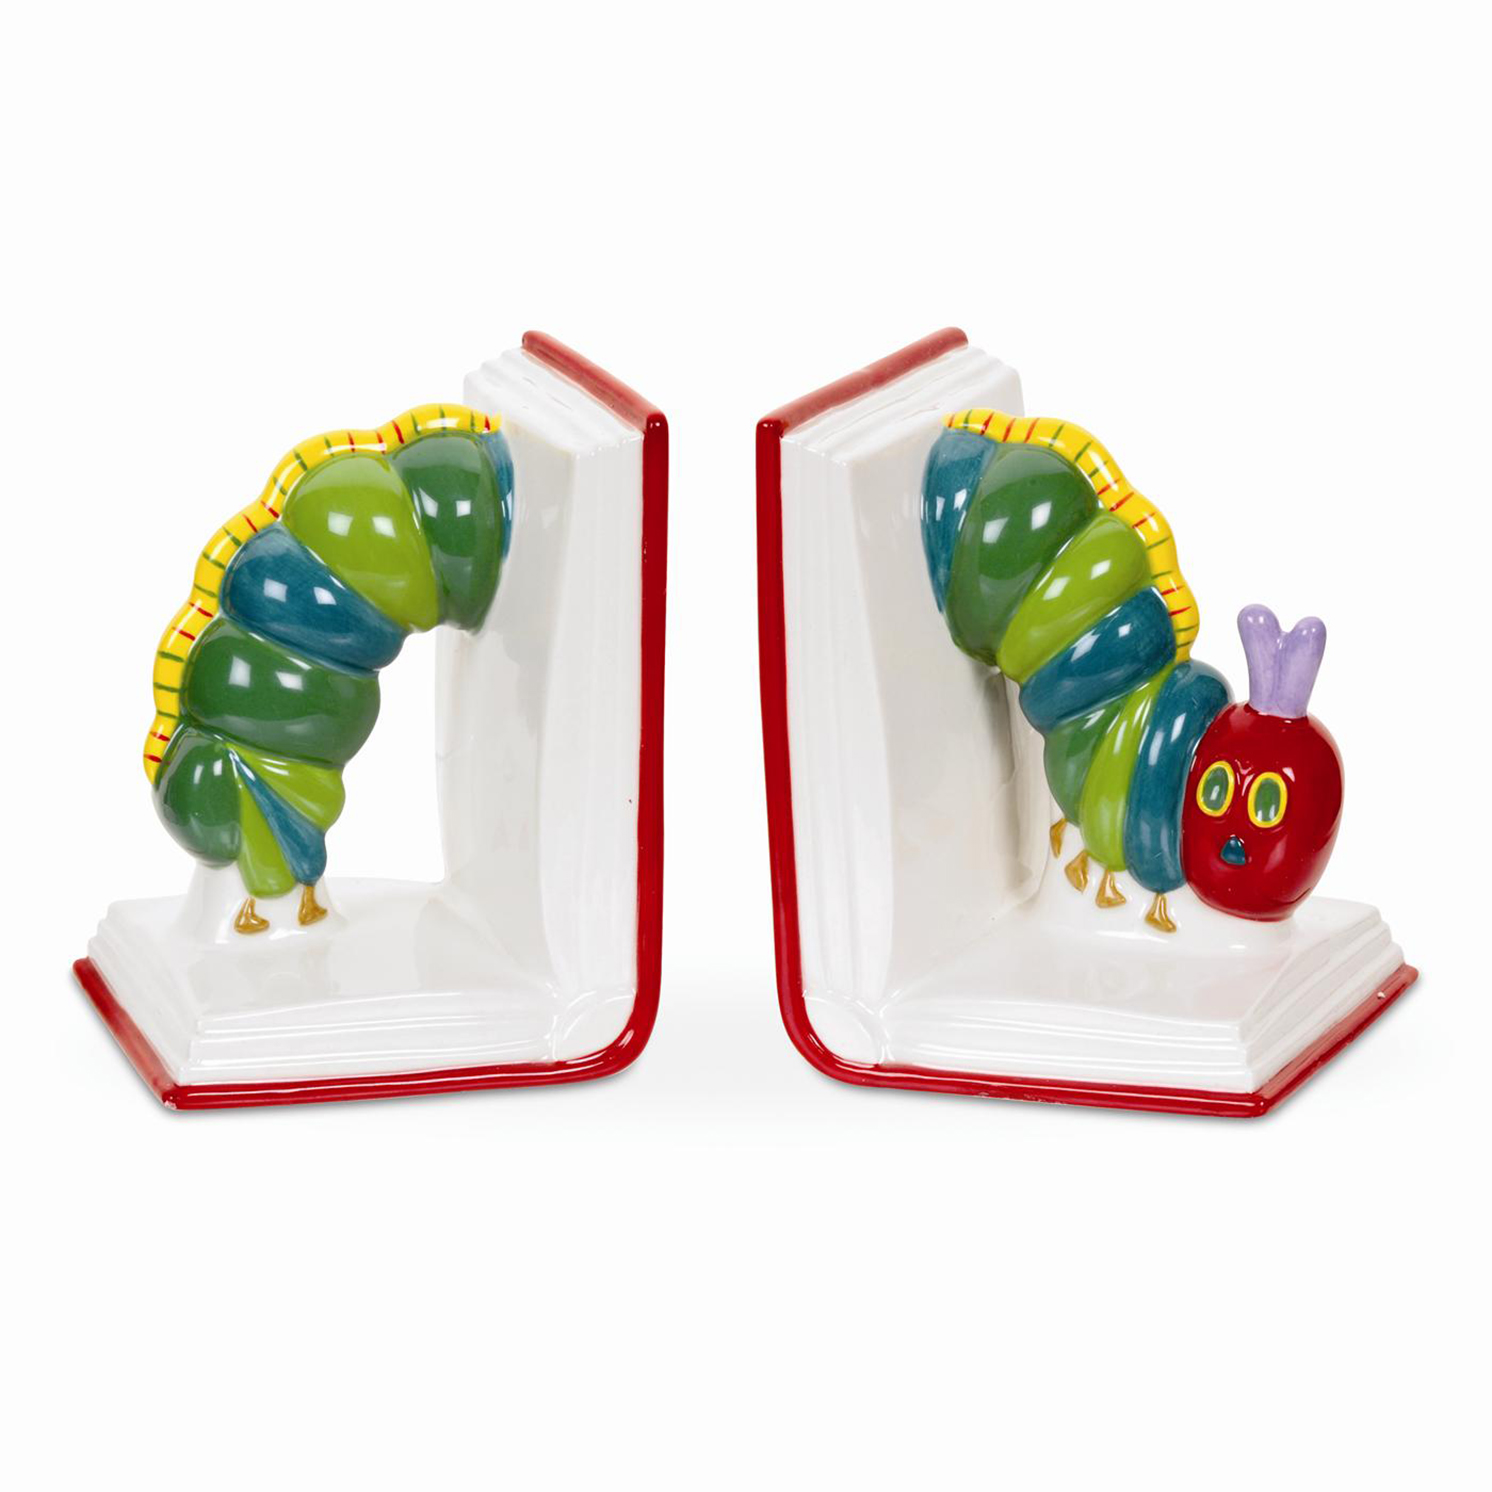 Portmeirion – The Very Hungry Caterpillar Book Ends in Presentation Gift Box